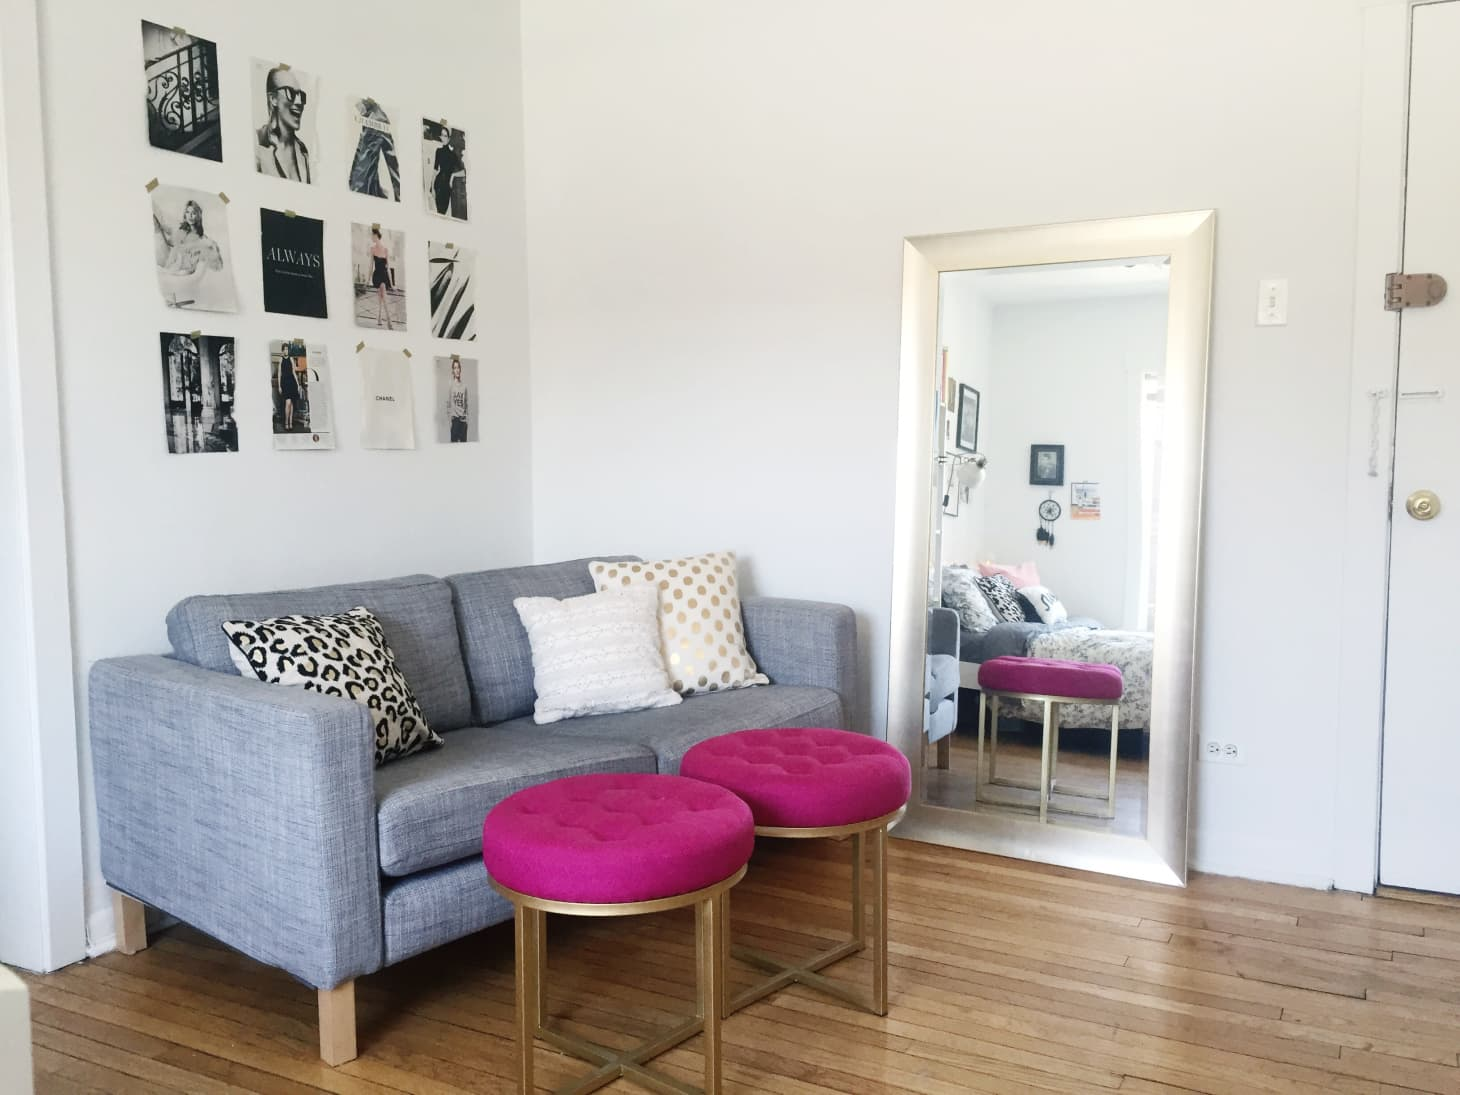 Best couch option for studio apartment